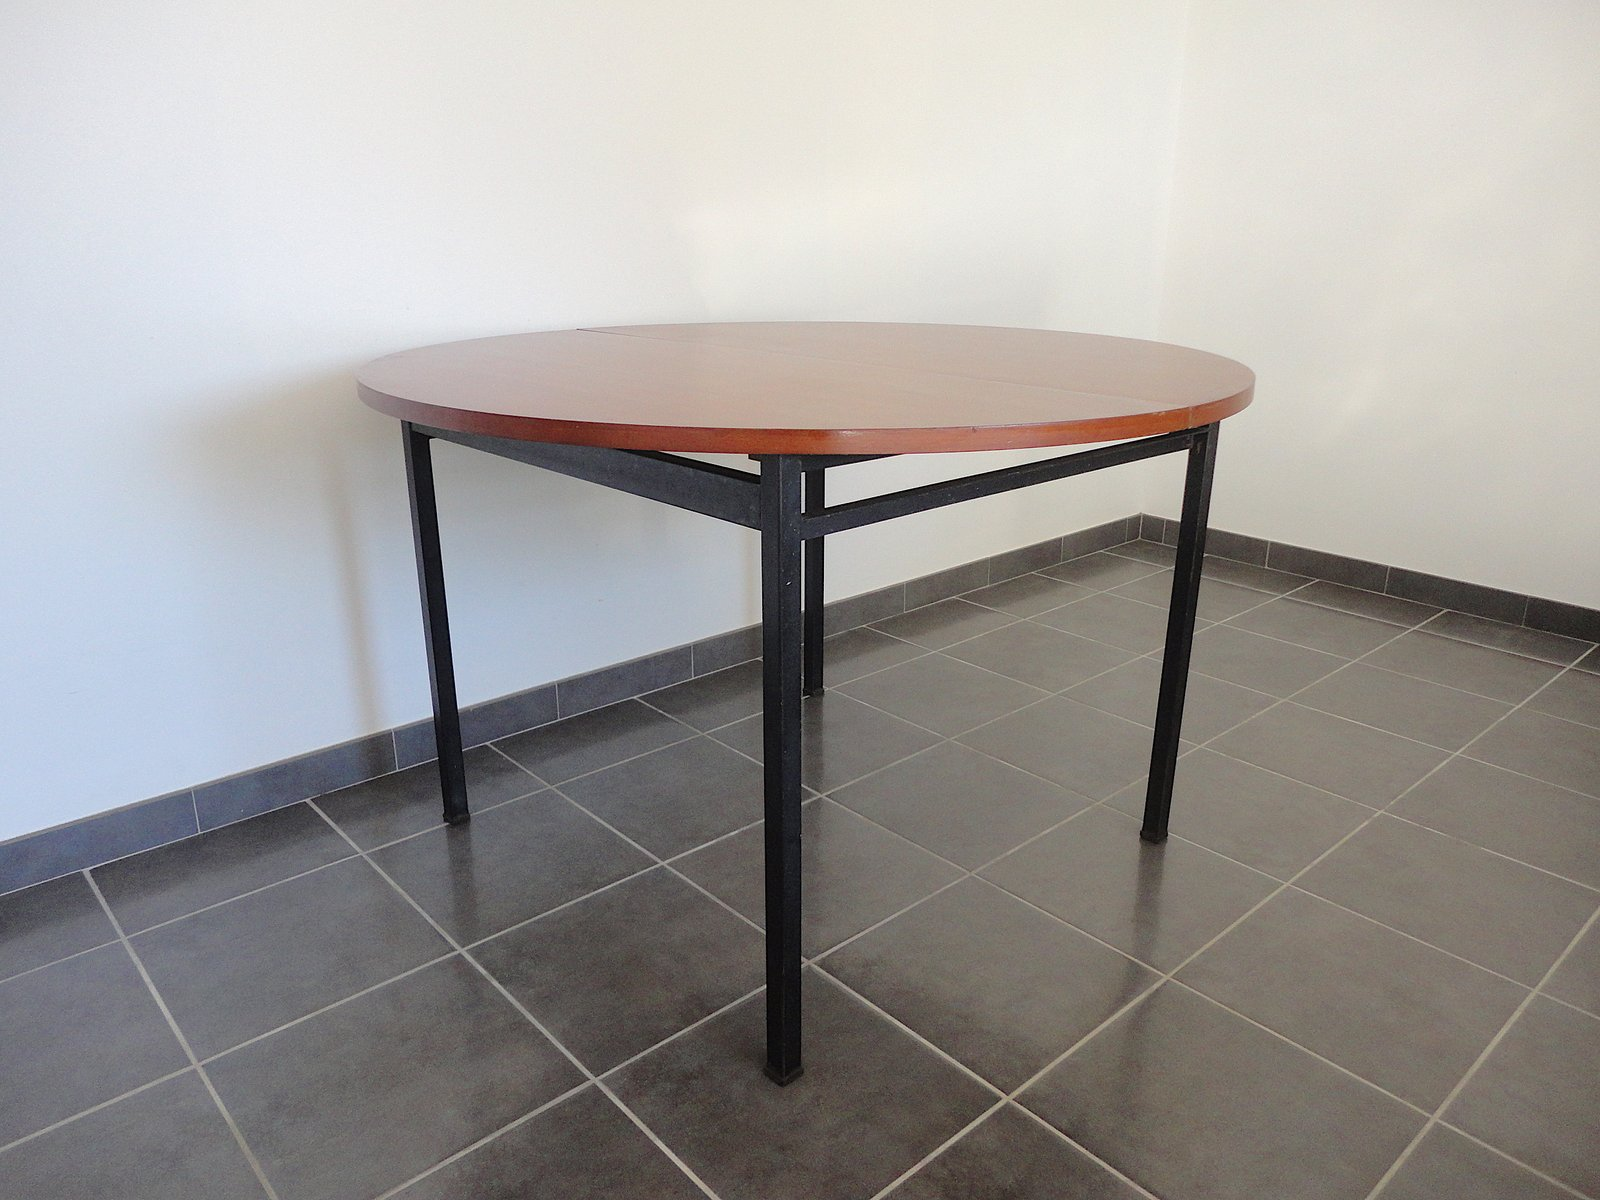 French Round Dining Table by Claude Vassal for Alveole 1950s for